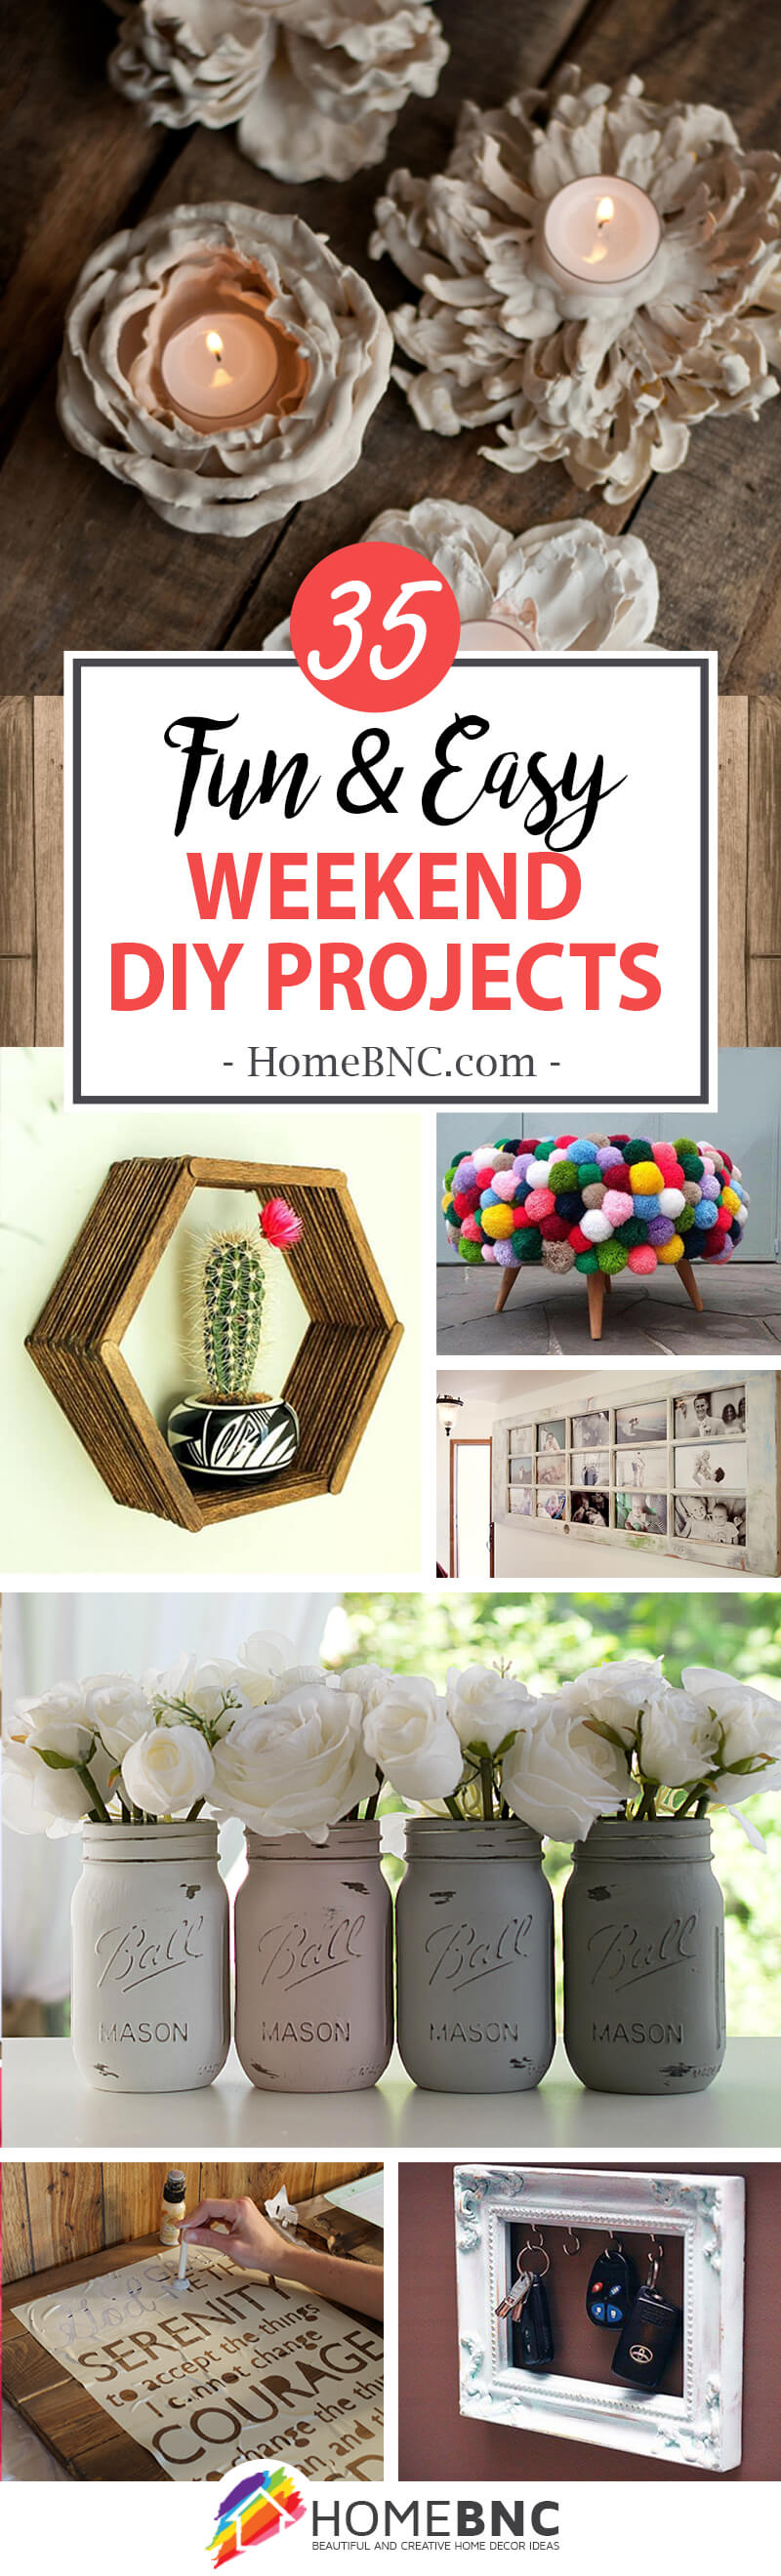 35 Best Weekend Diy Home Decor Projects Ideas And Designs For 2021